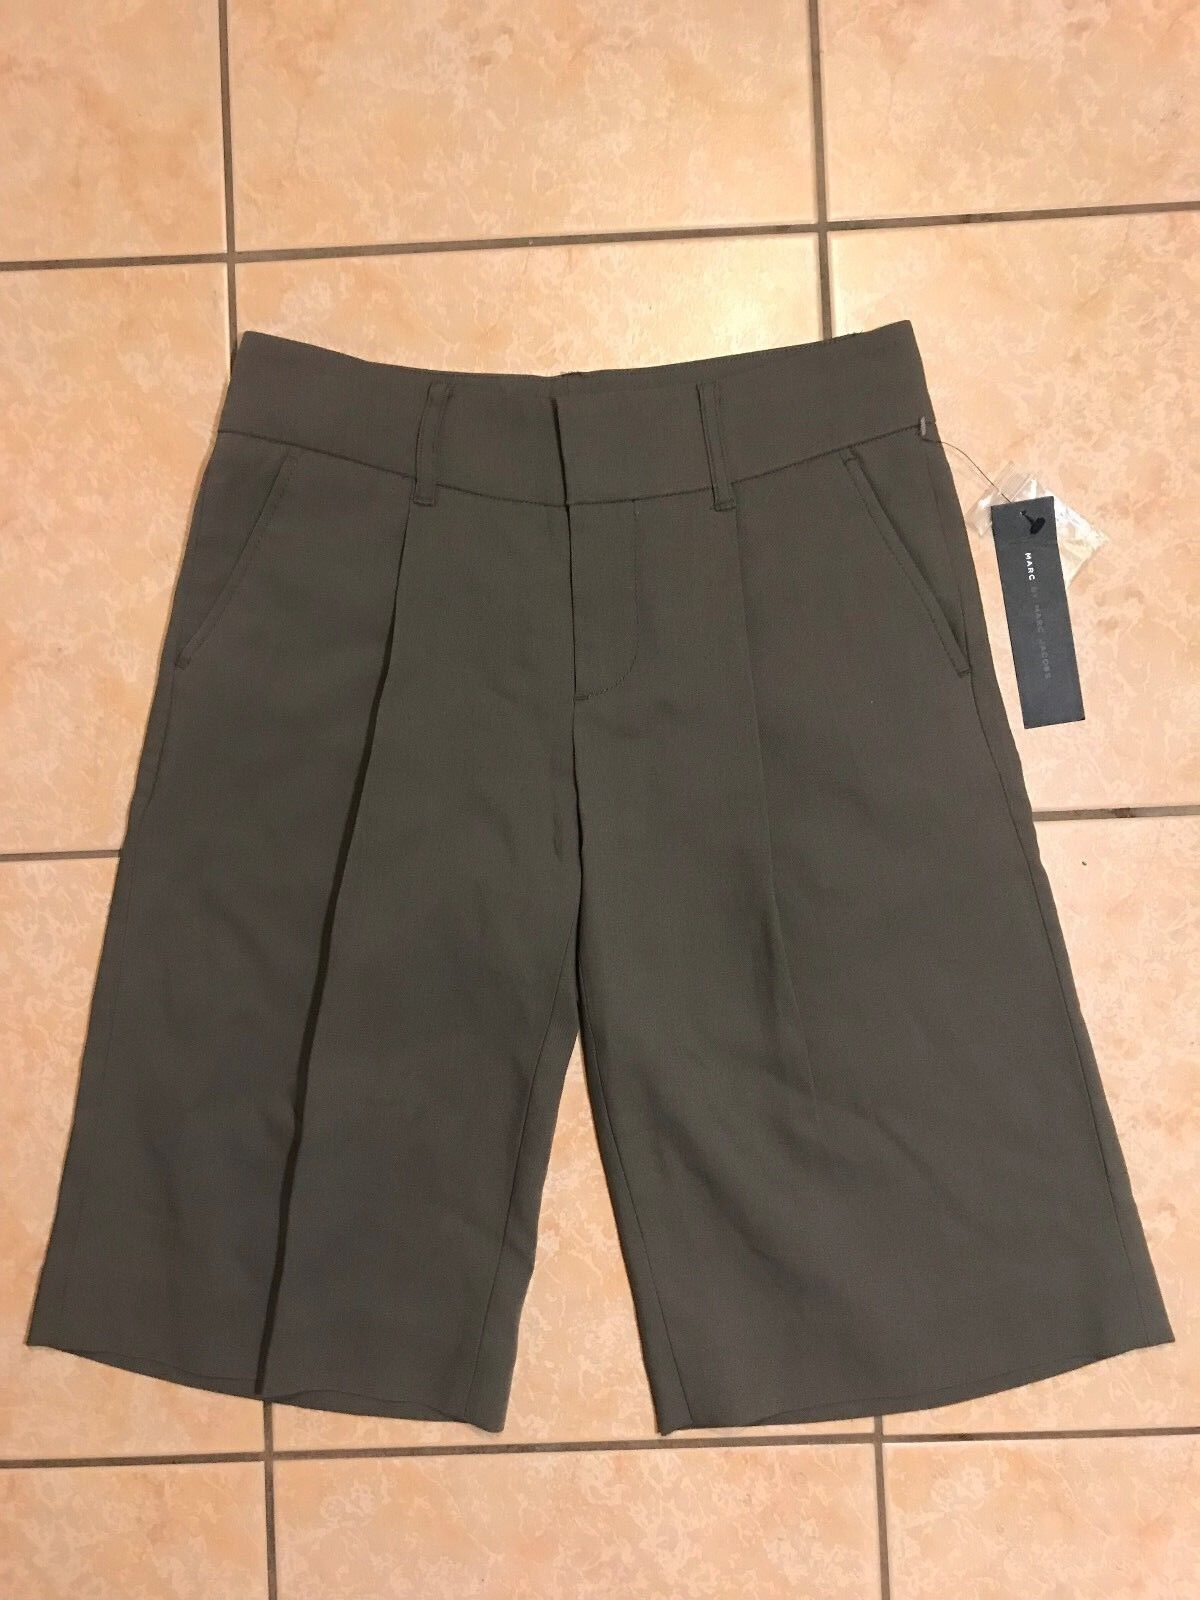 NWT Marc Jacobs Womens Taupe Wool Pleated Knee Length Shorts M171061 Size 2